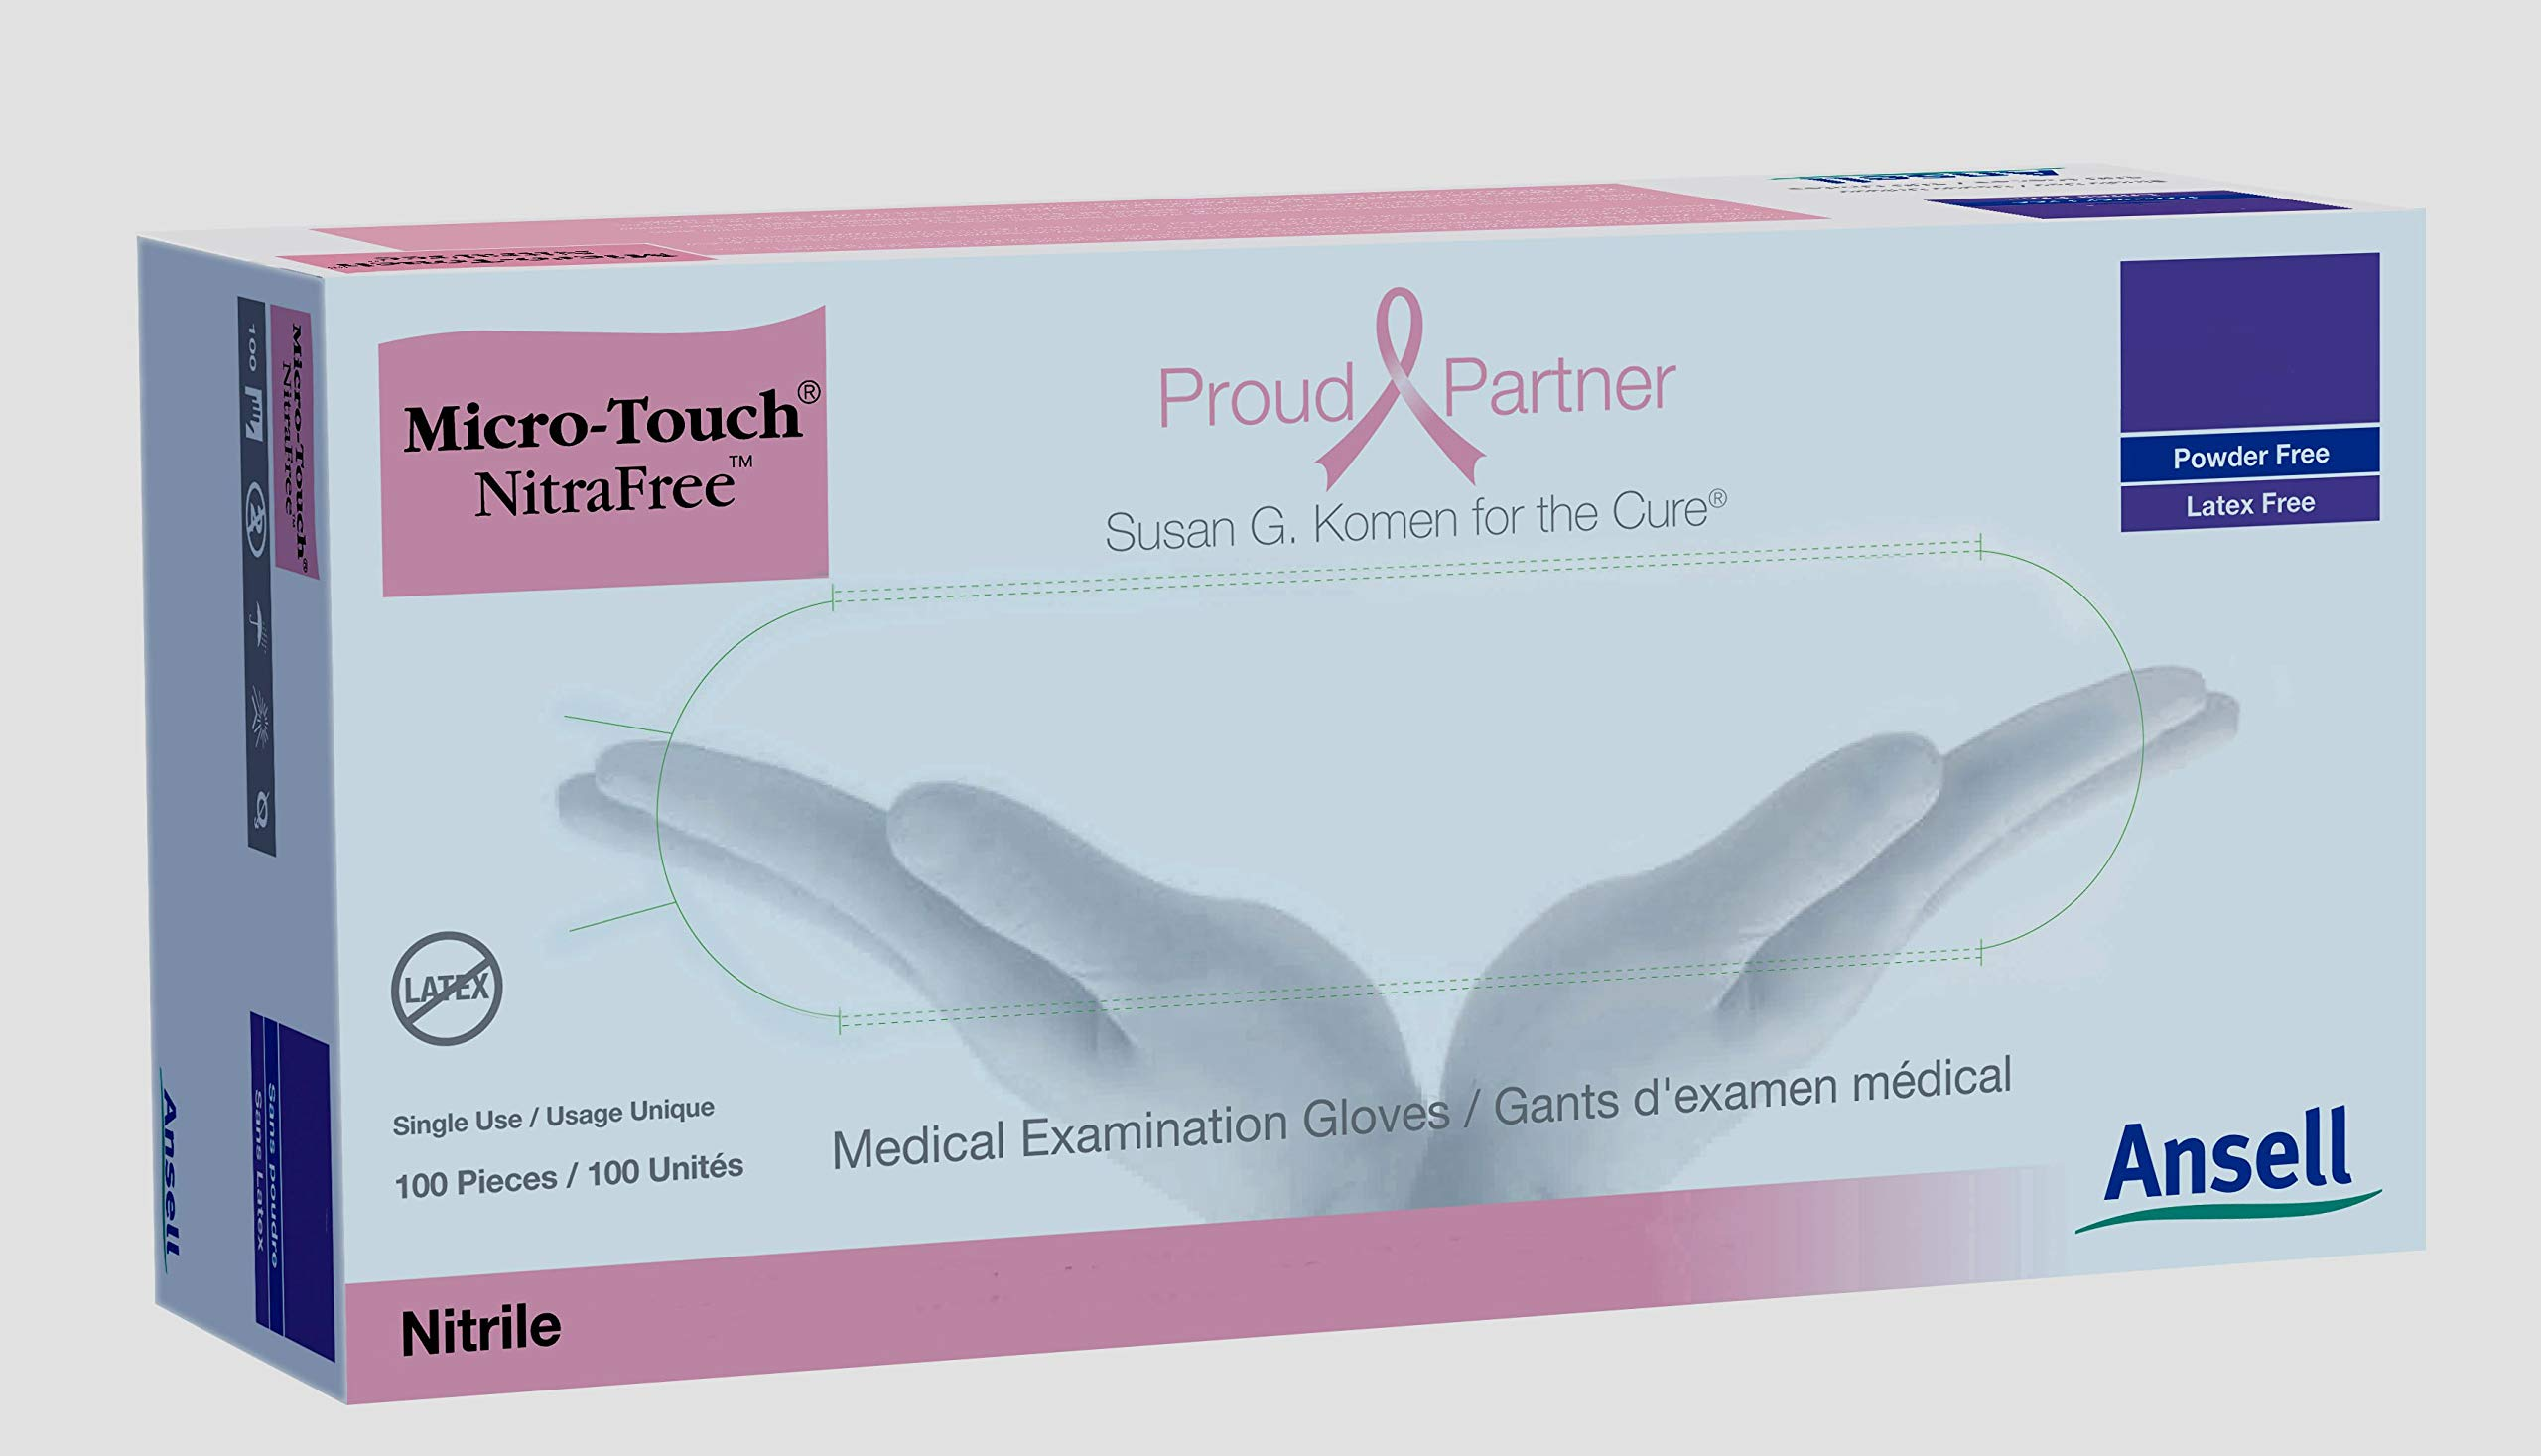 Micro-Touch NitraFree Exam Glove Small NonSterile Nitrile Standard Cuff Length Textured Fingertips Pink Chemo Tested, 6034511 - Box of 100 by Micro-Touch NitraFree